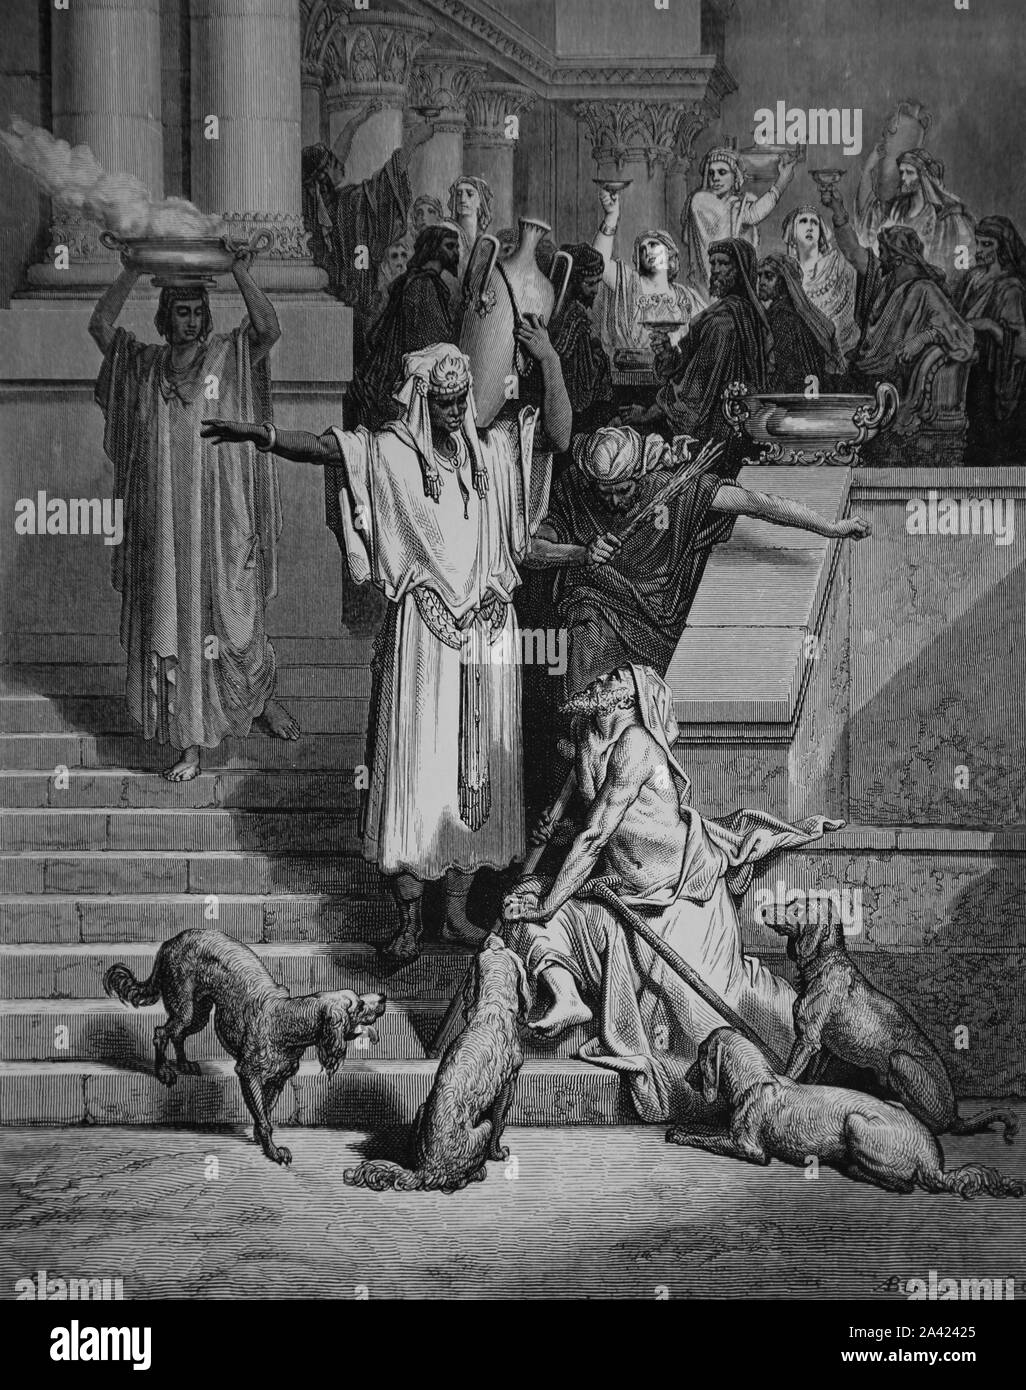 Parable of the Rich man and Lazarus. Gospel of Luke (Luke 16:19-31). Engraving. Bible Illustration by Gustave Dore. 19th century. Stock Photo